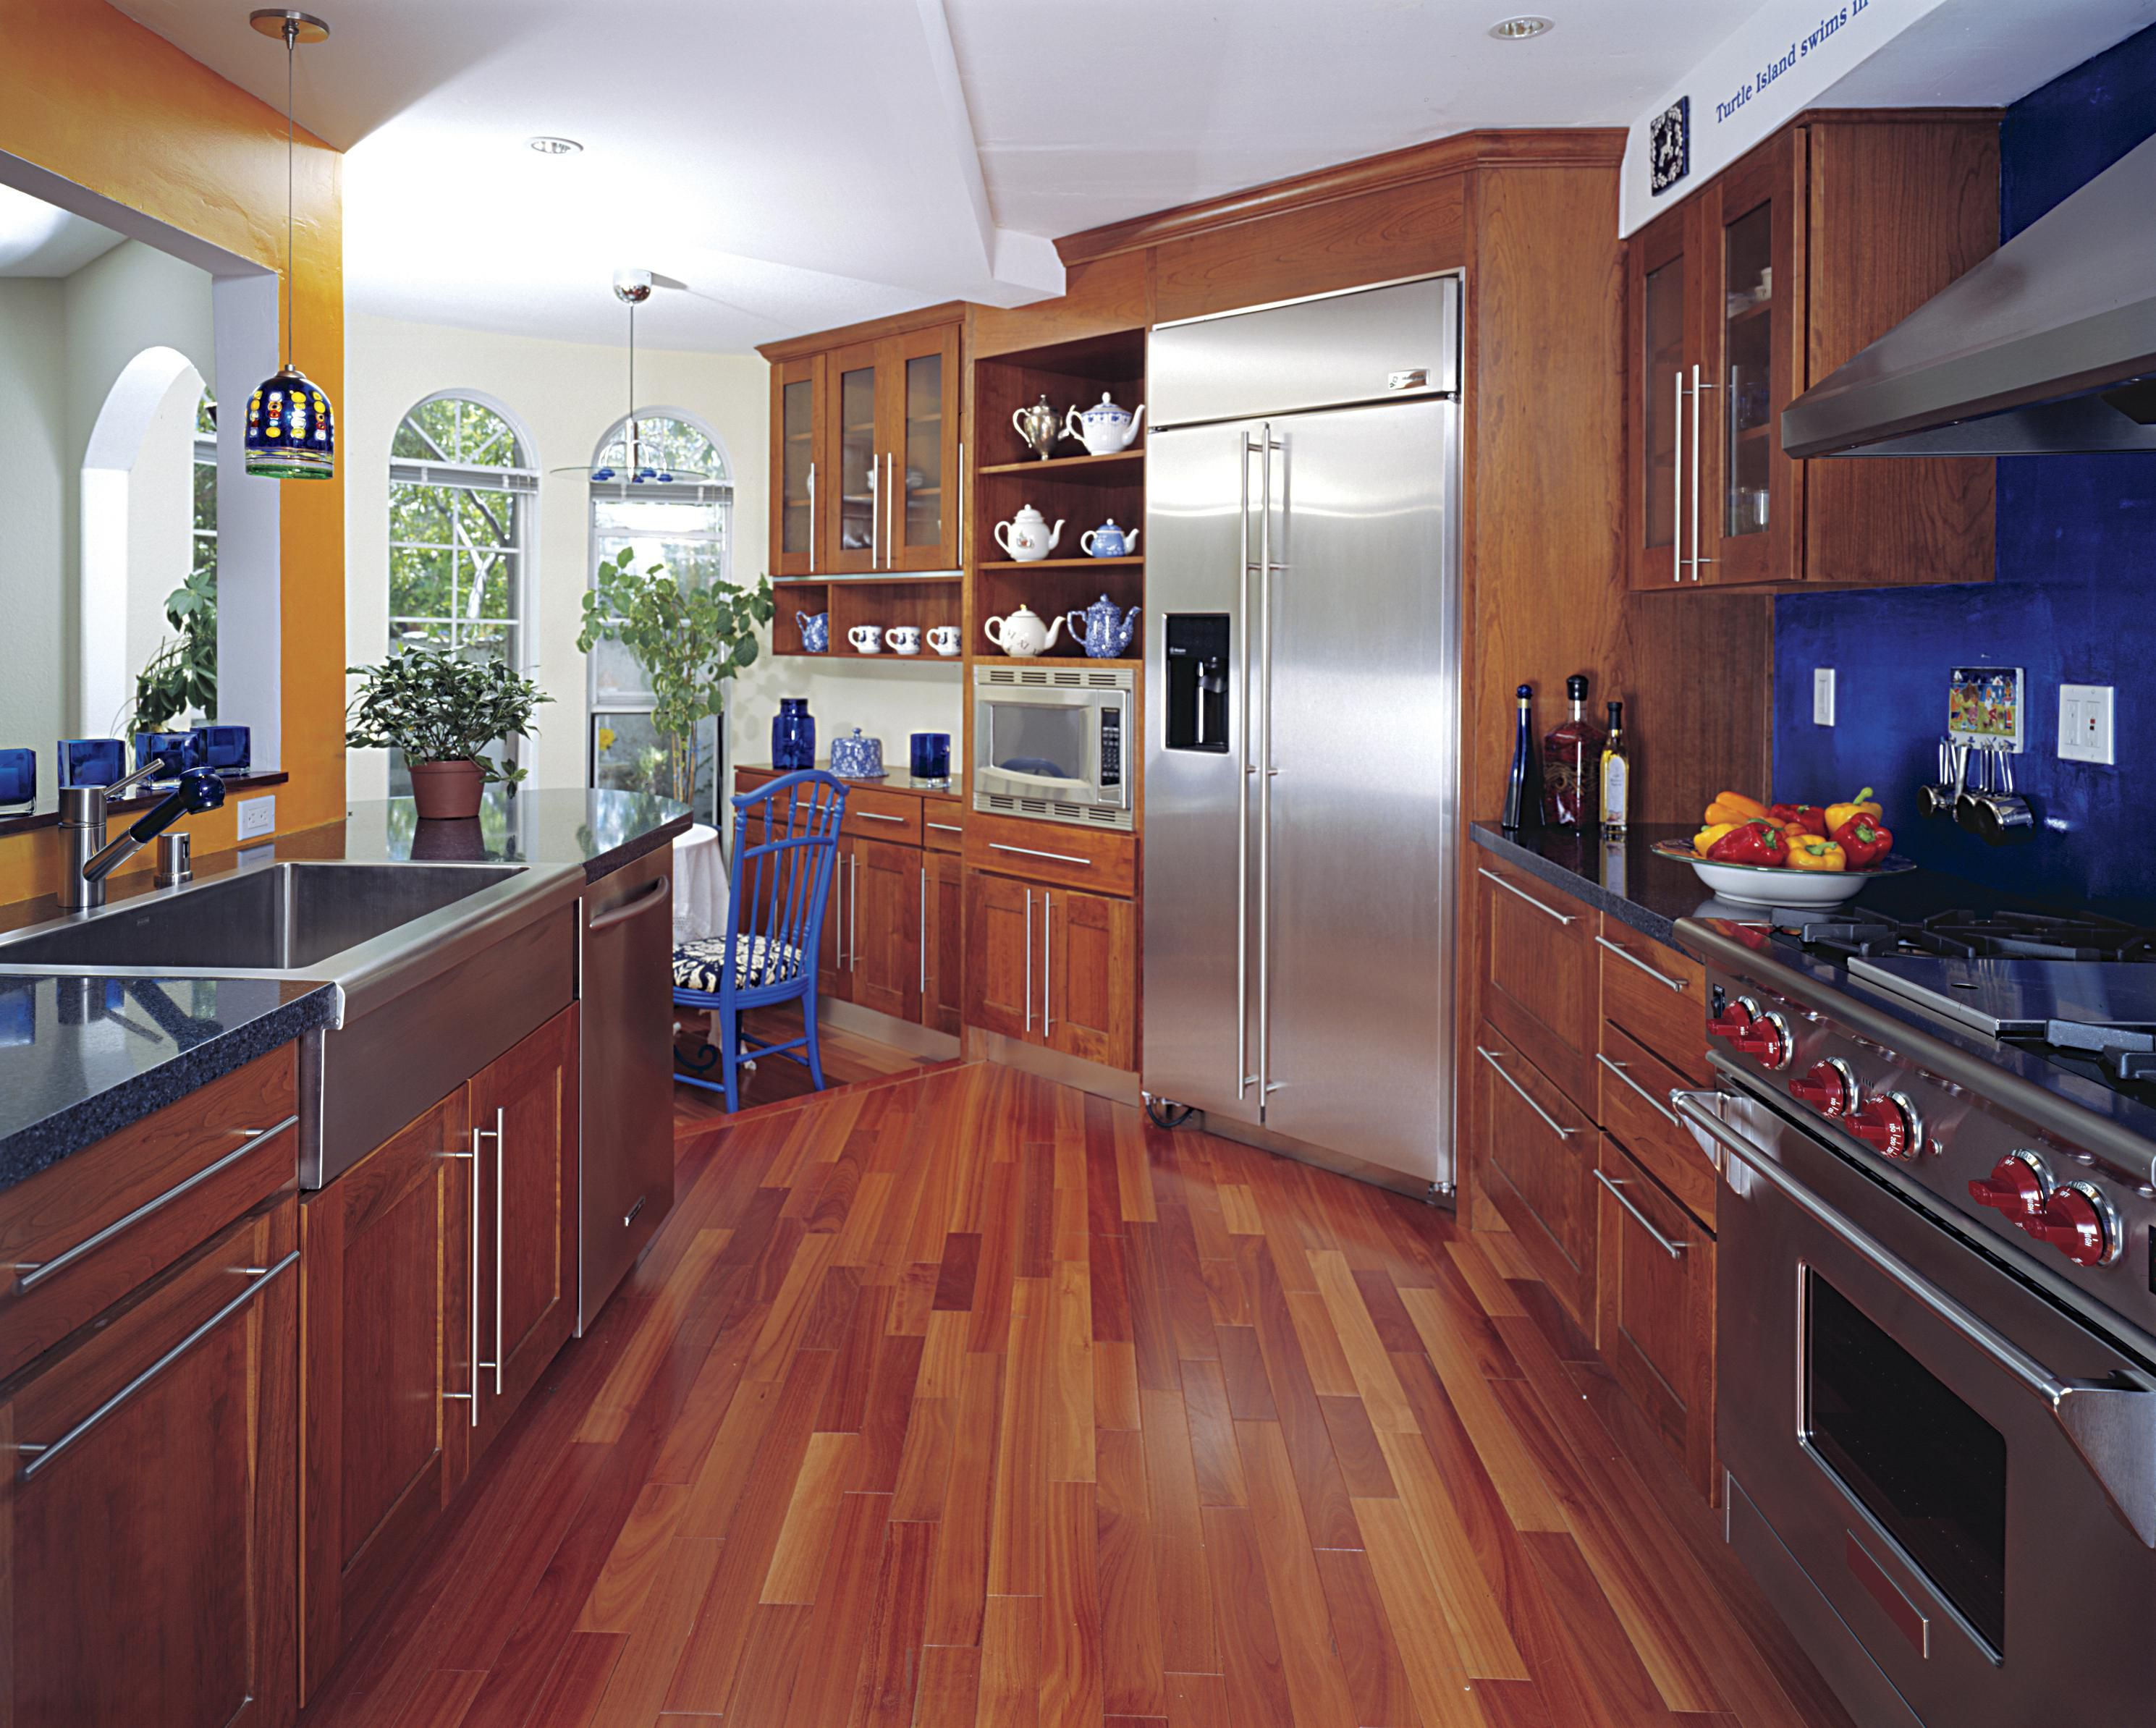 Hardwood floor in a kitchen is this allowed for All floors